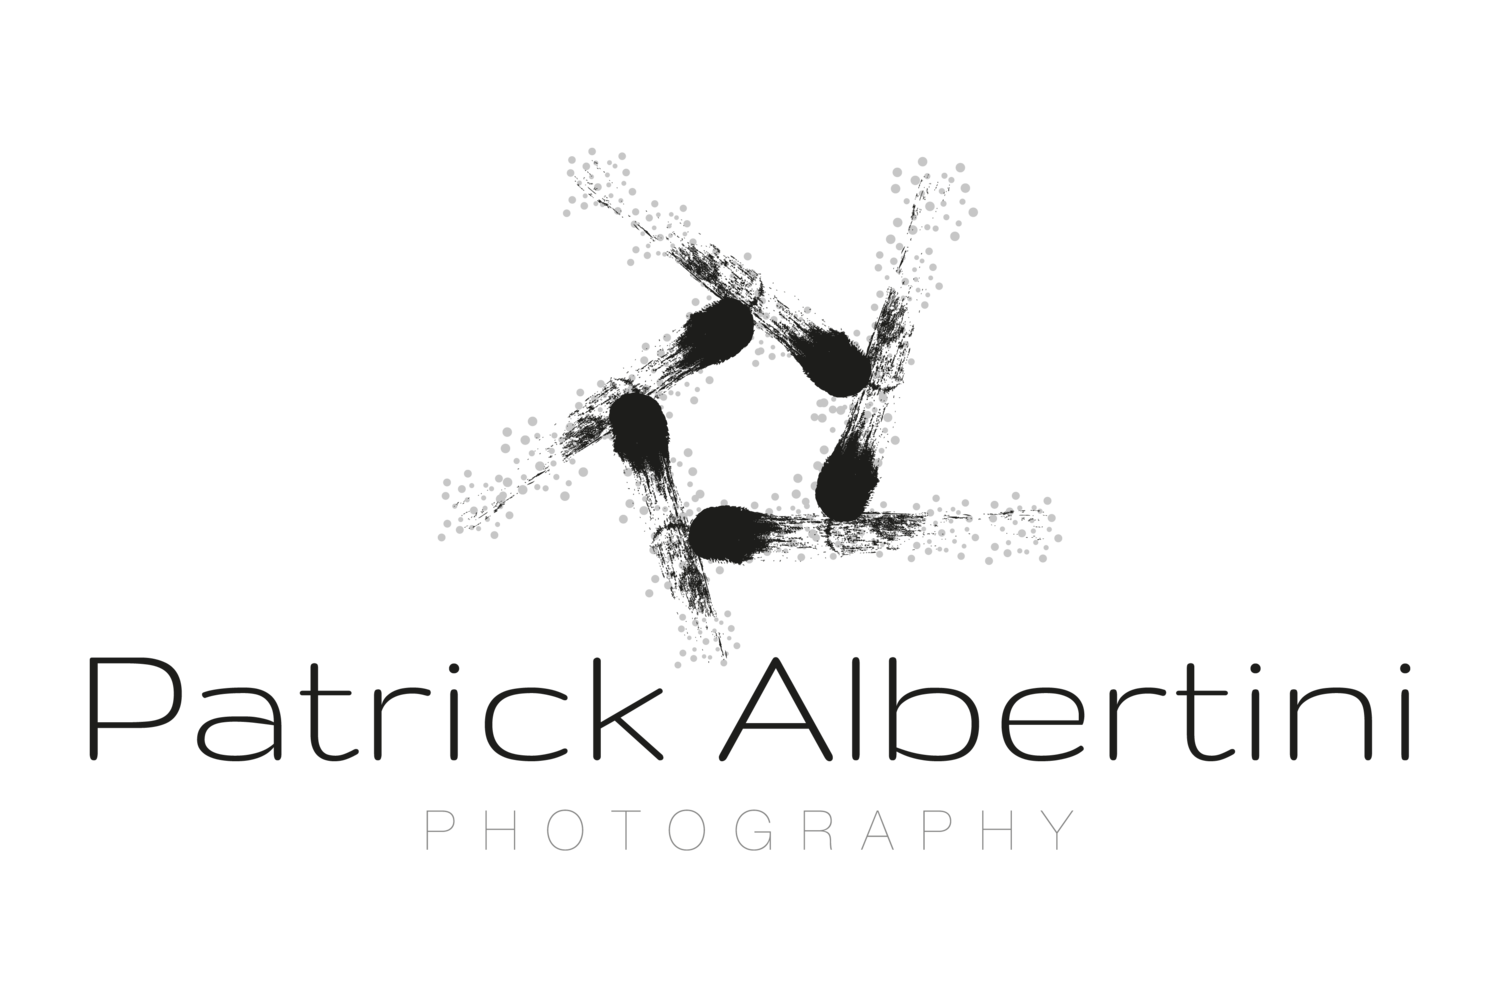 Patrick Albertini Photography